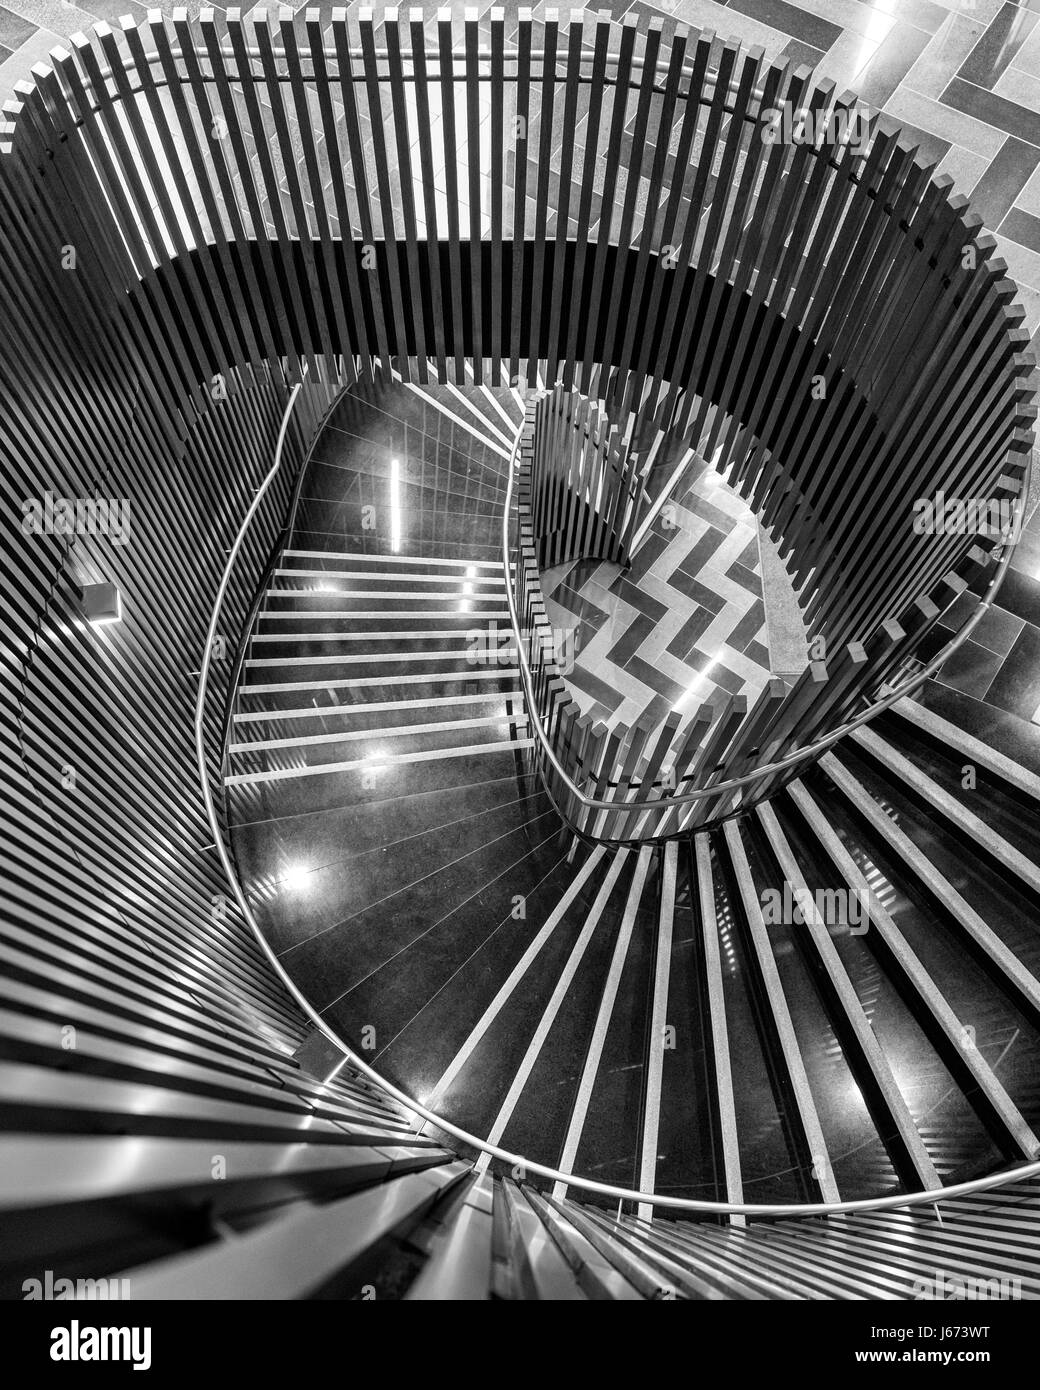 Spiral Staircase, Victoria Gate in Leeds - Stock Image